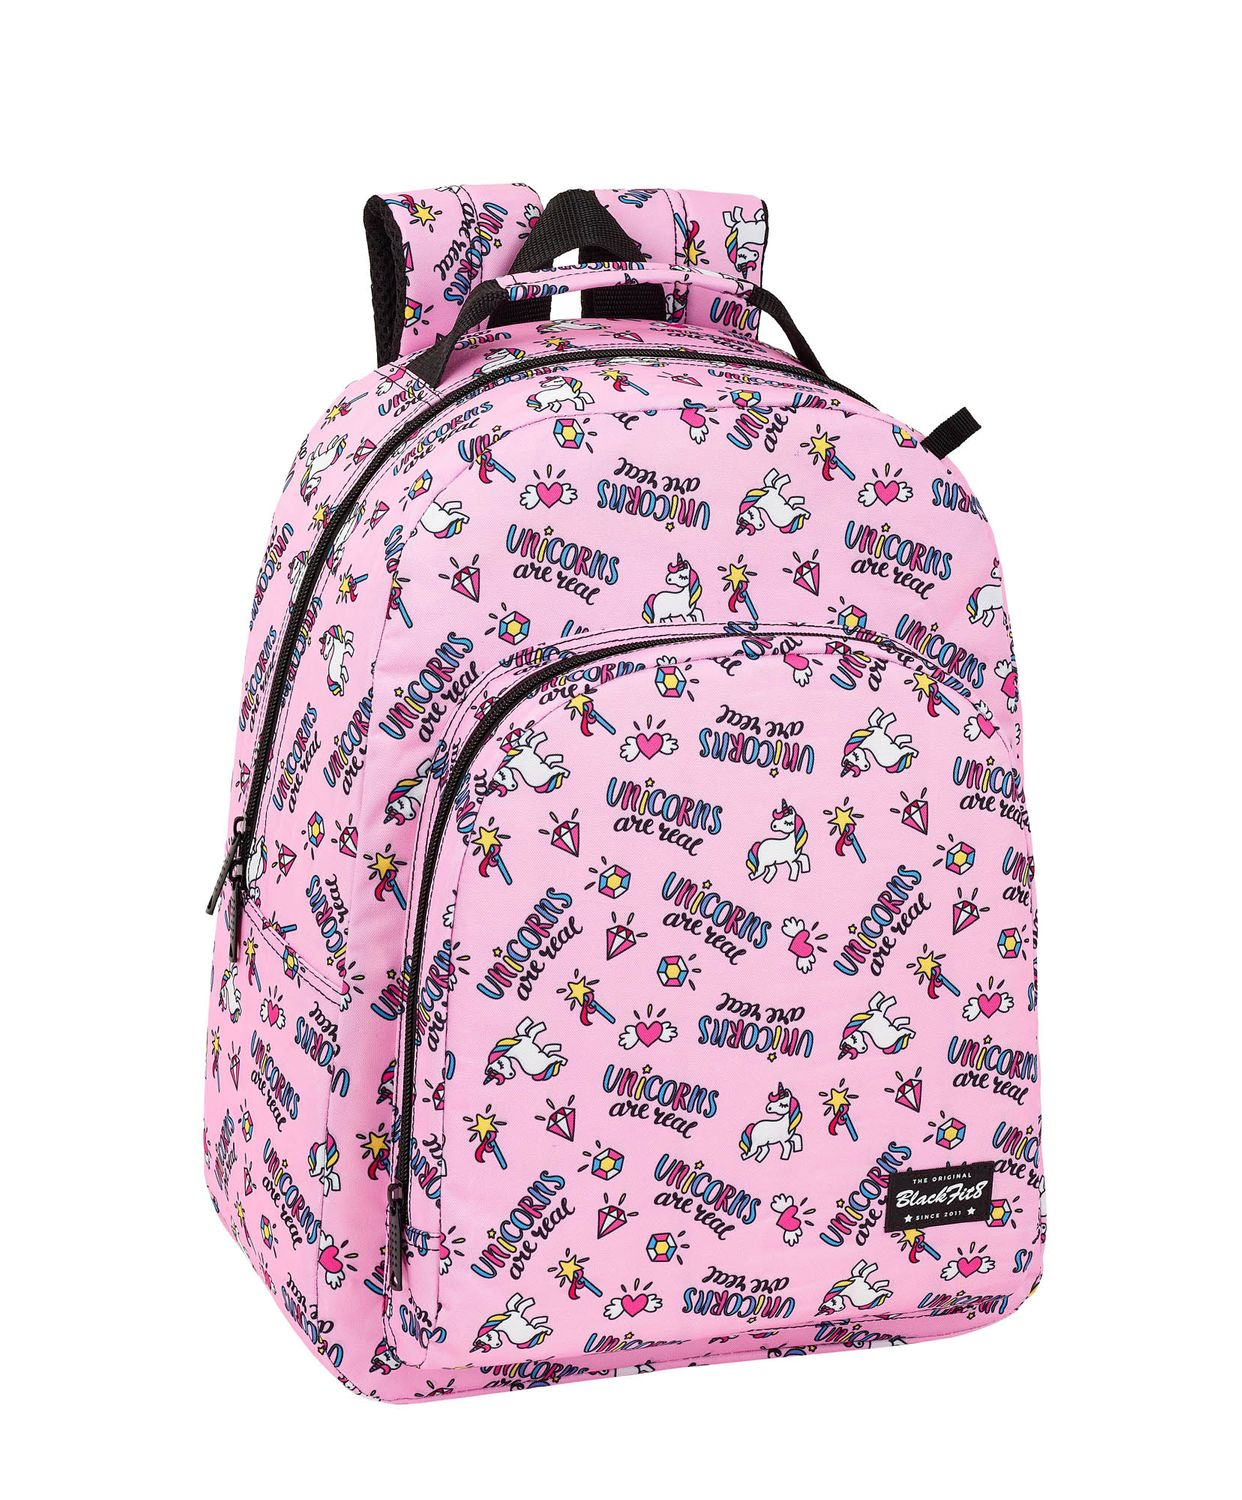 Blackfit8 MAGICAL Unicorns Premium Backpack 42cm – image 1